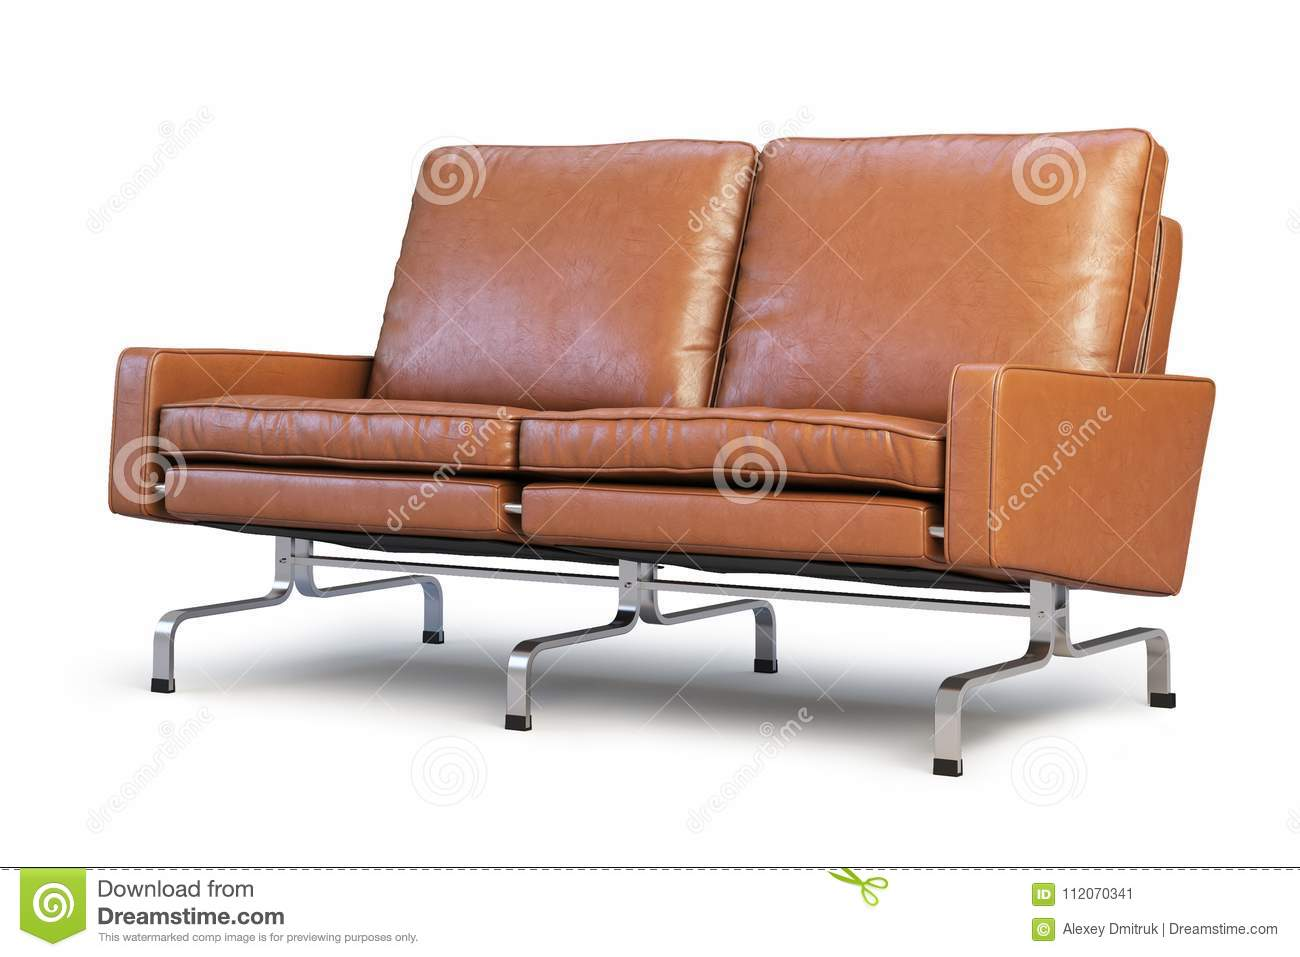 Loveseat Sofa 3d Render